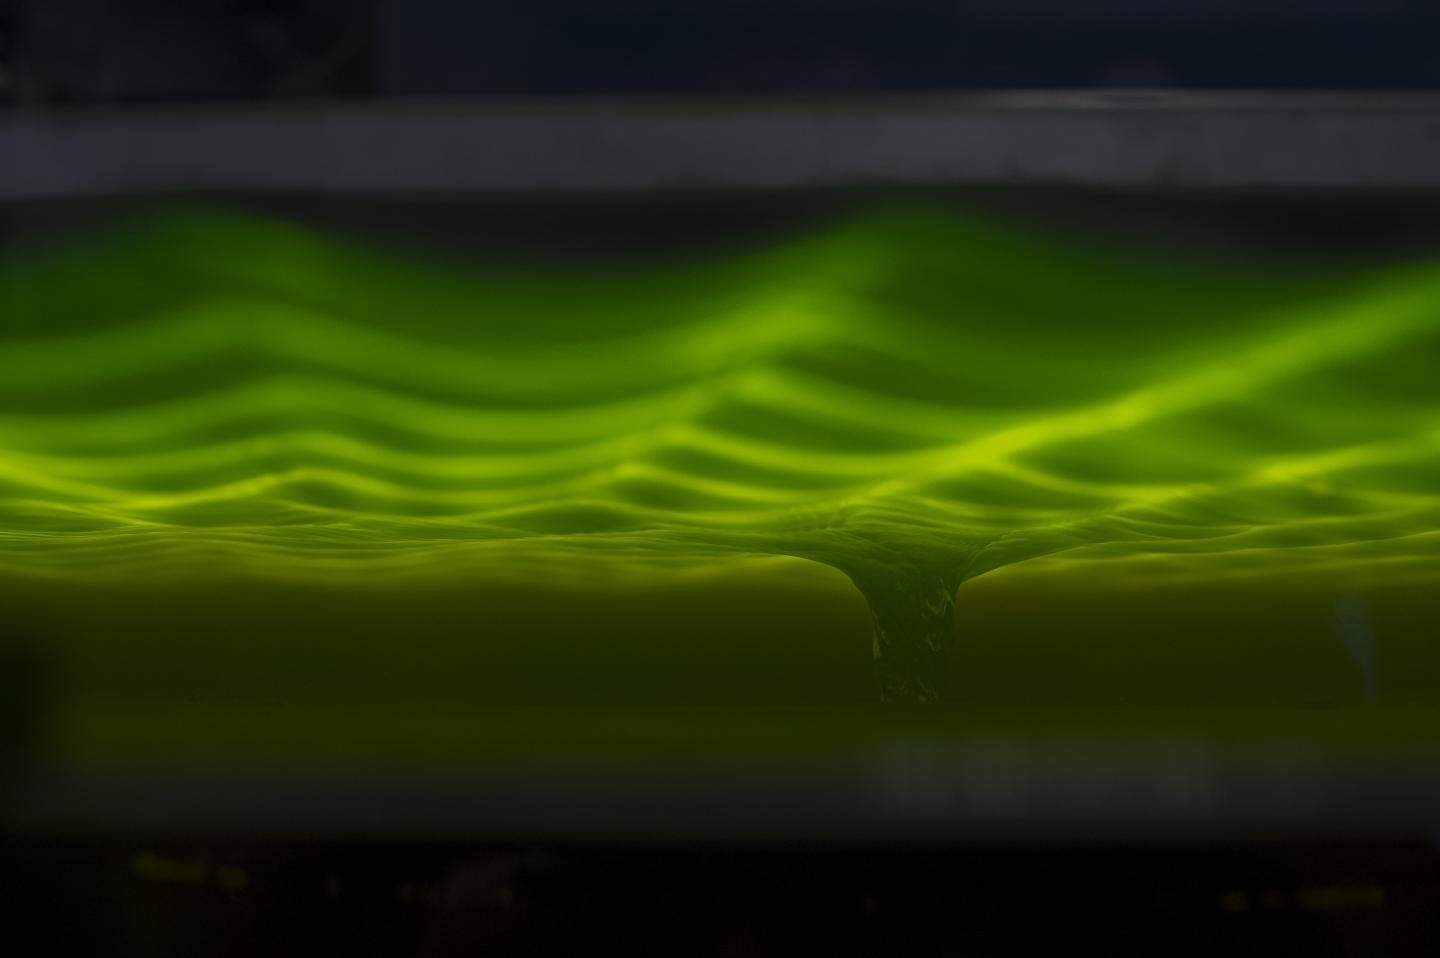 Physicists make waves by simulating black hole in a bathtub